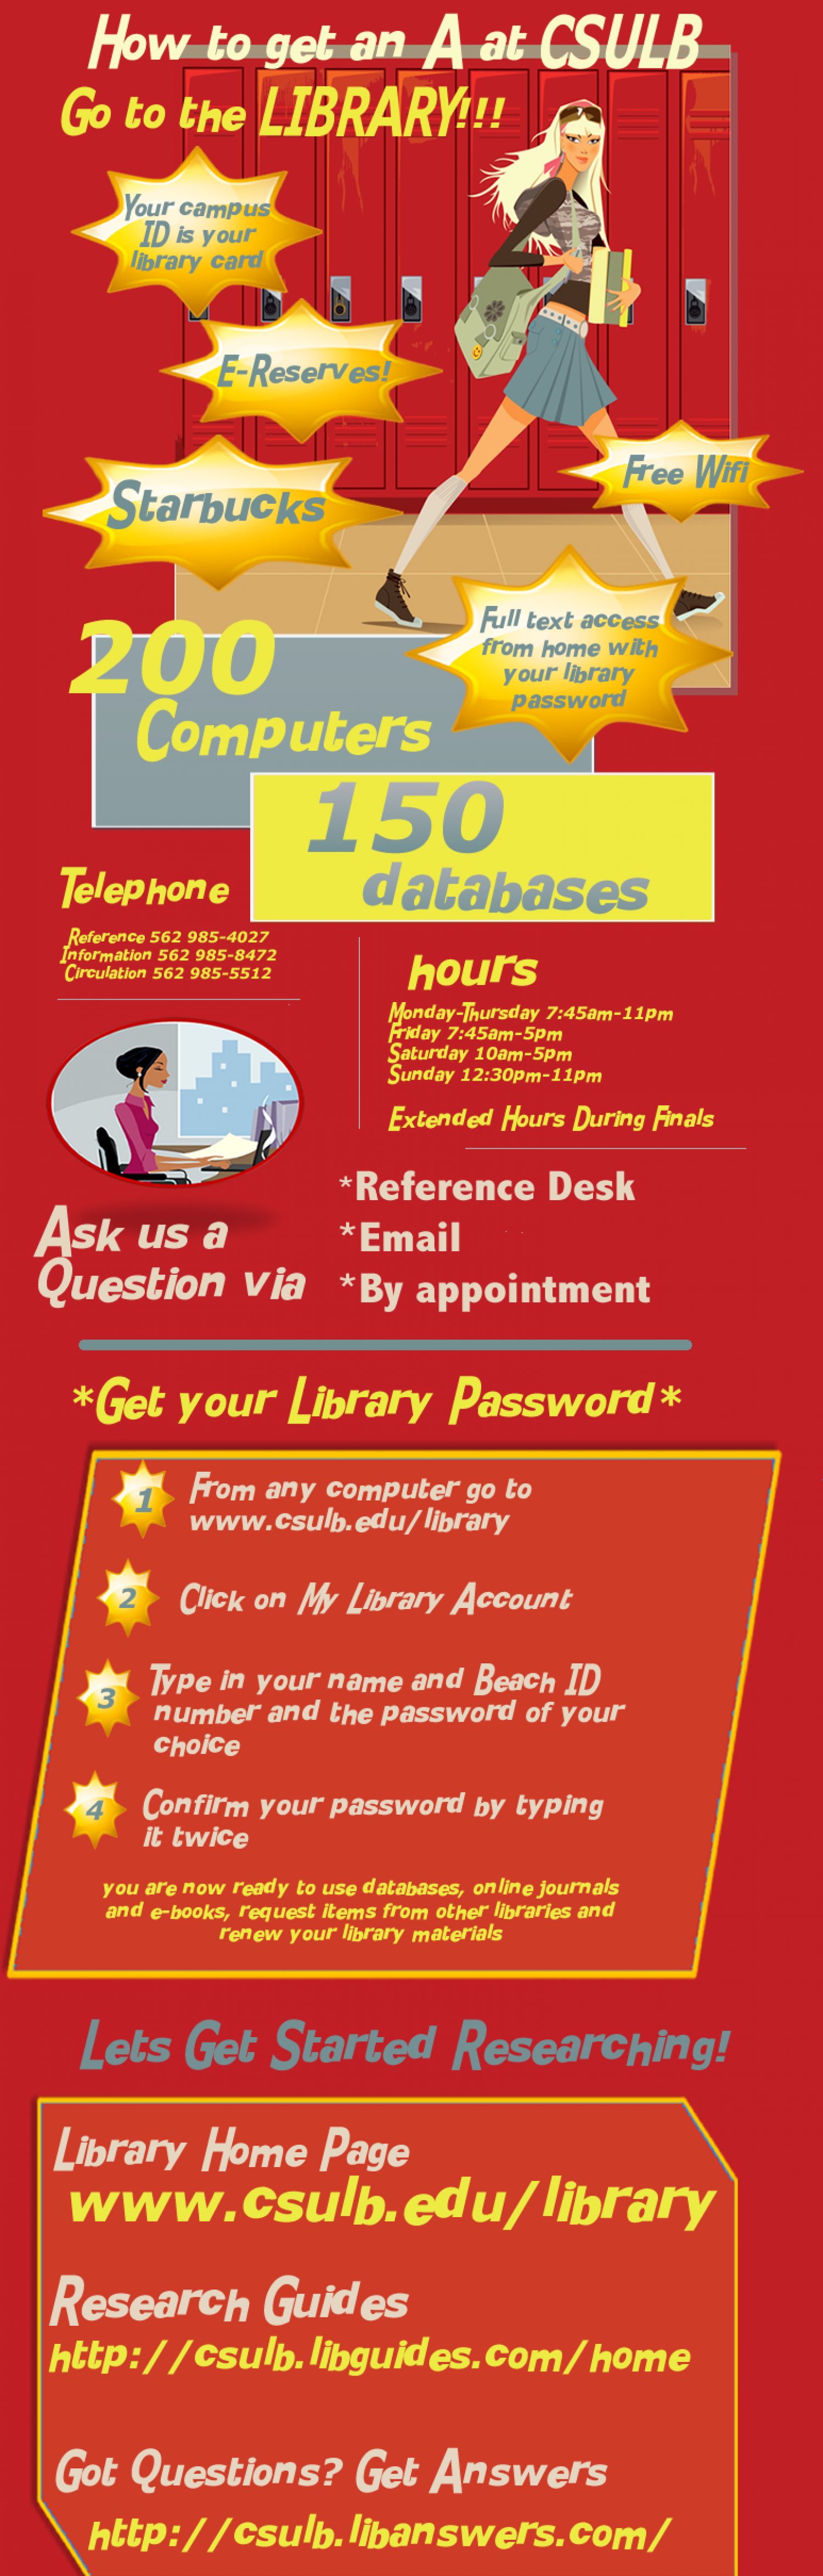 CSULB Library Orientation Infographic